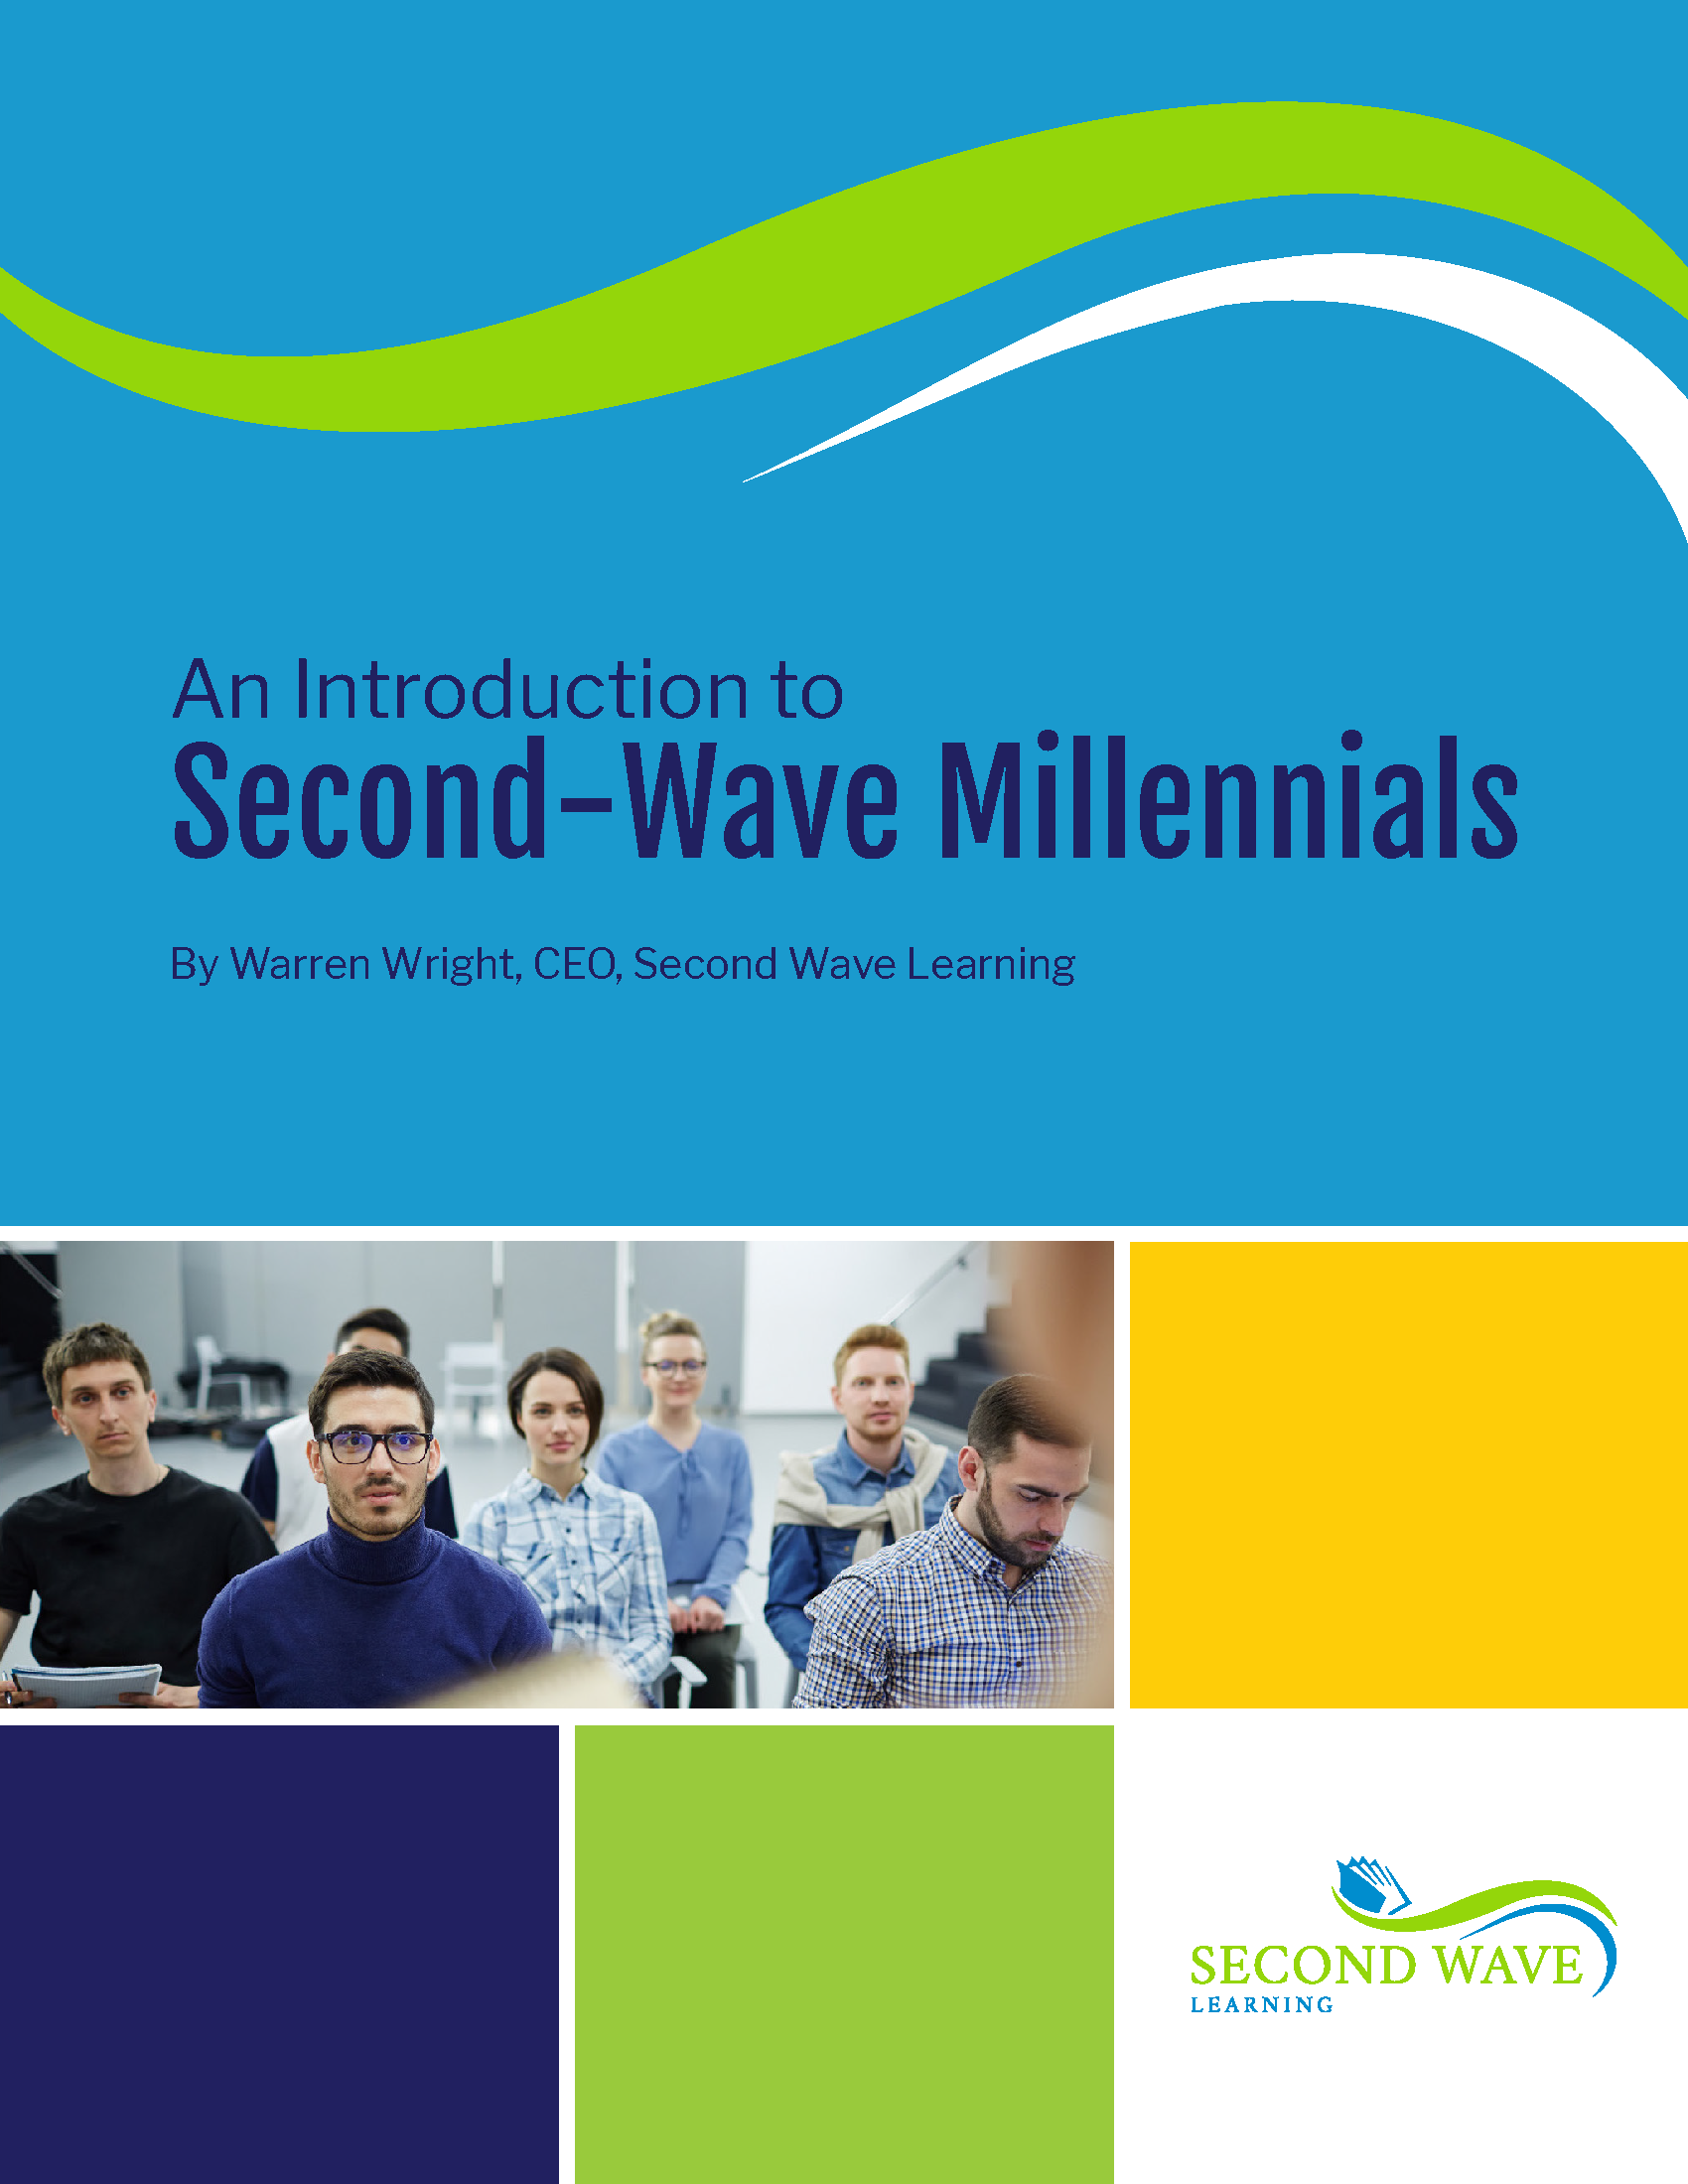 Second-Wave Millennials_white paper Final.png